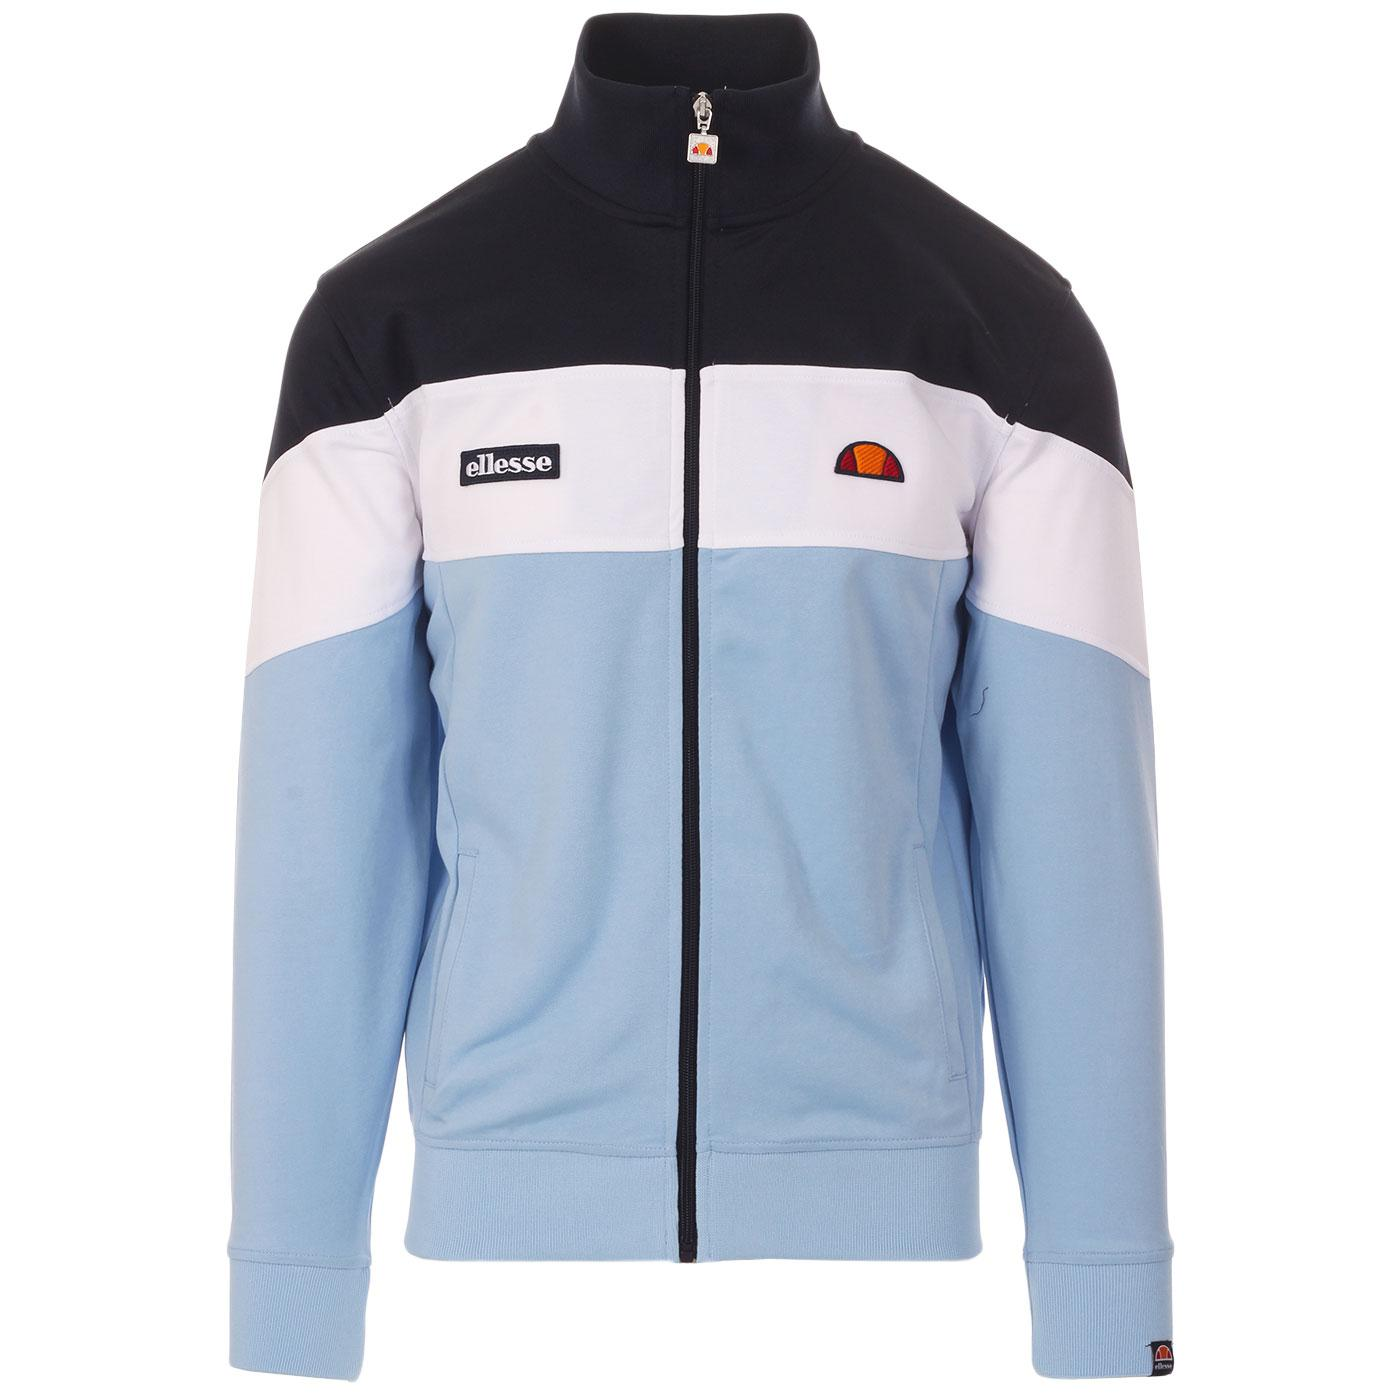 Caprini ELLESSE Retro Colour Block Track Top (LB)